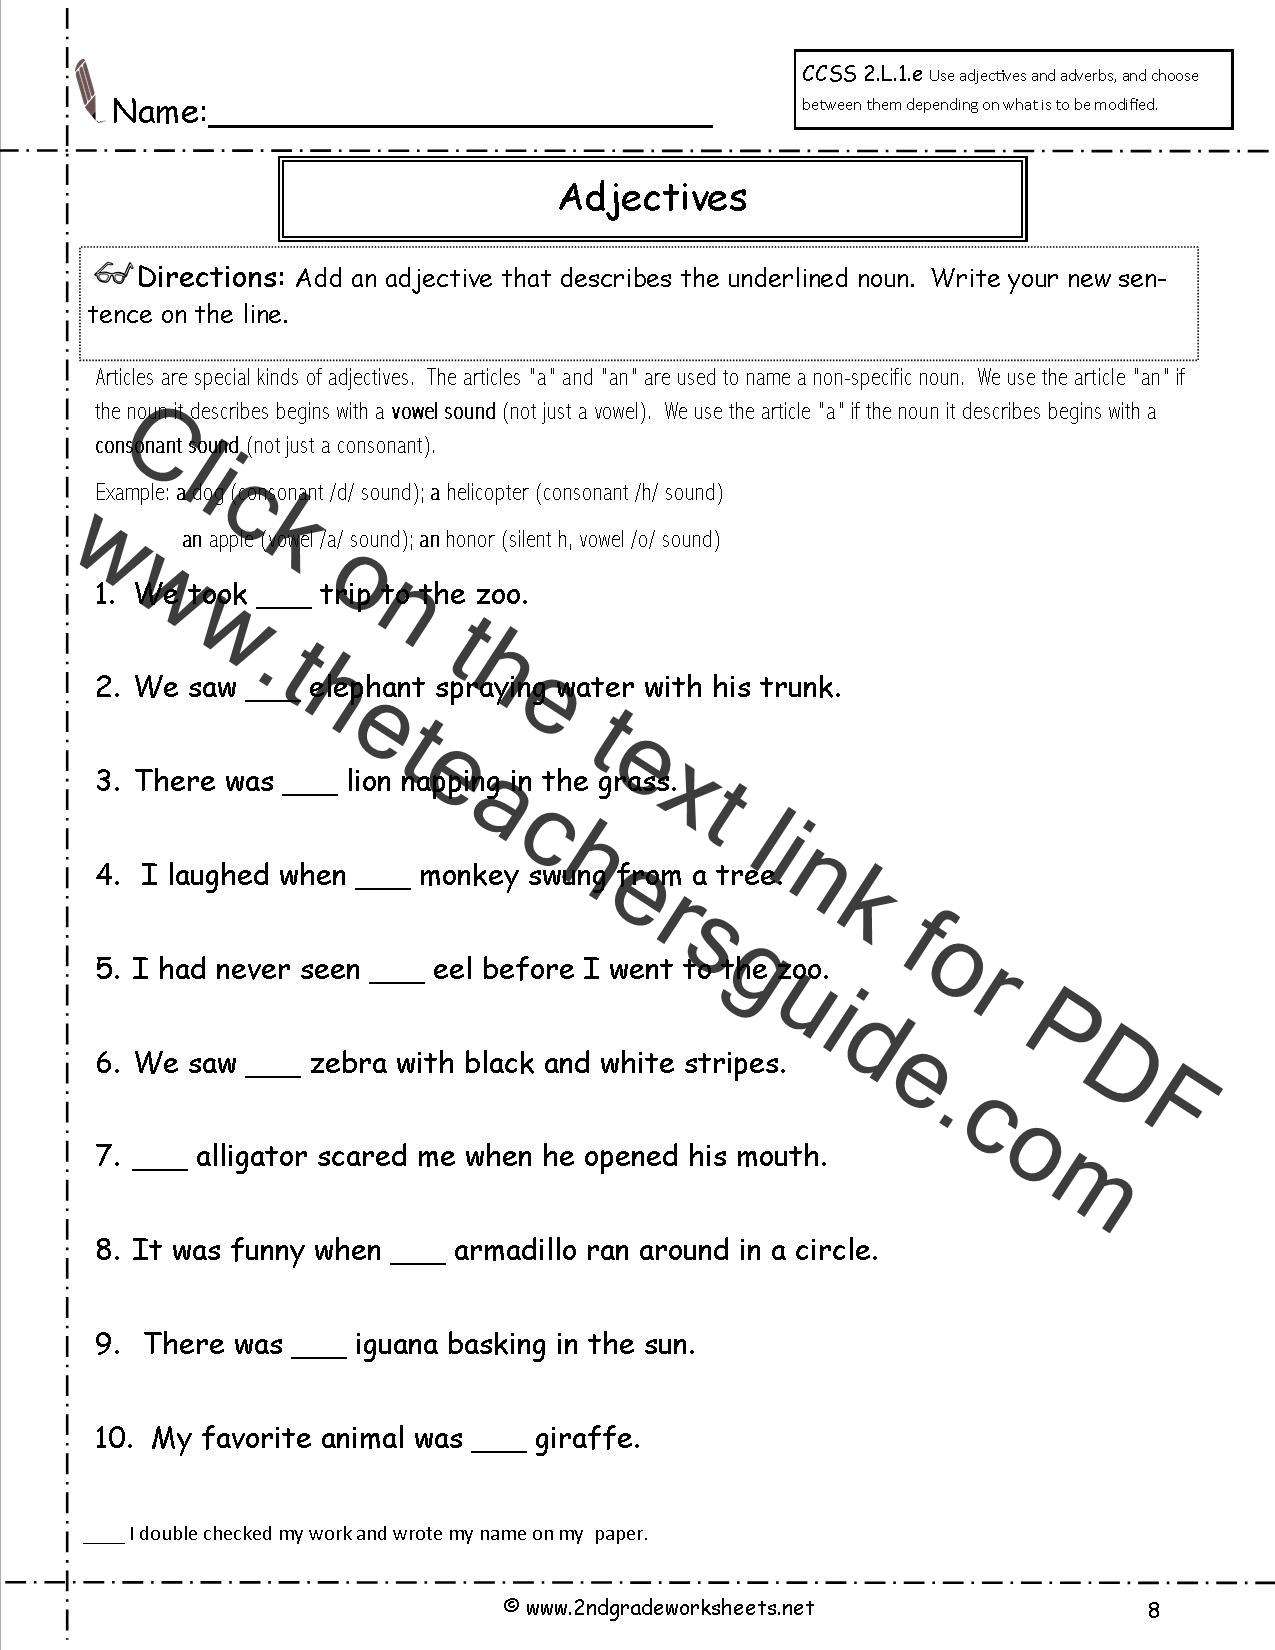 - Free Language/Grammar Worksheets And Printouts